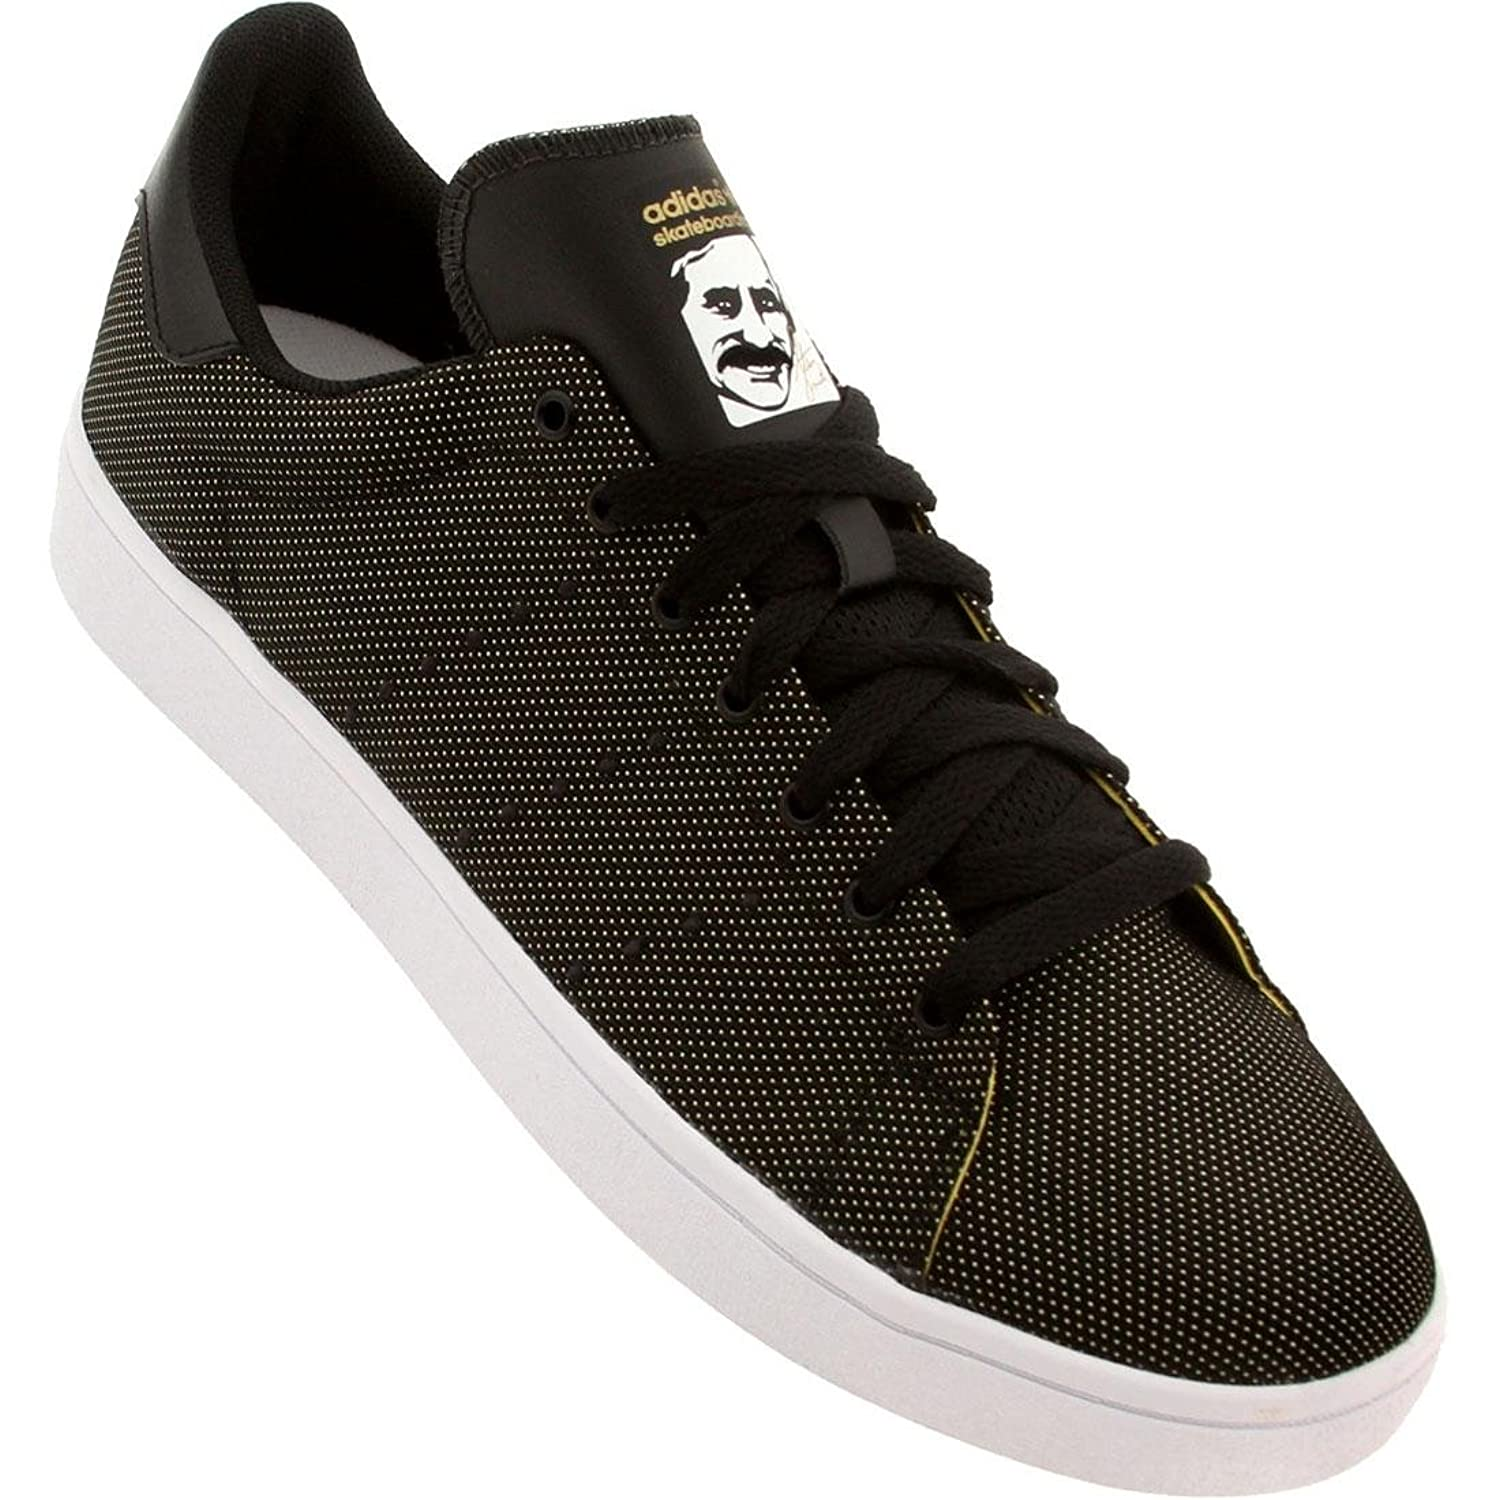 Adidas Stan Smith Mens Sneakers C76948 кеды adidas кеды stan smith w